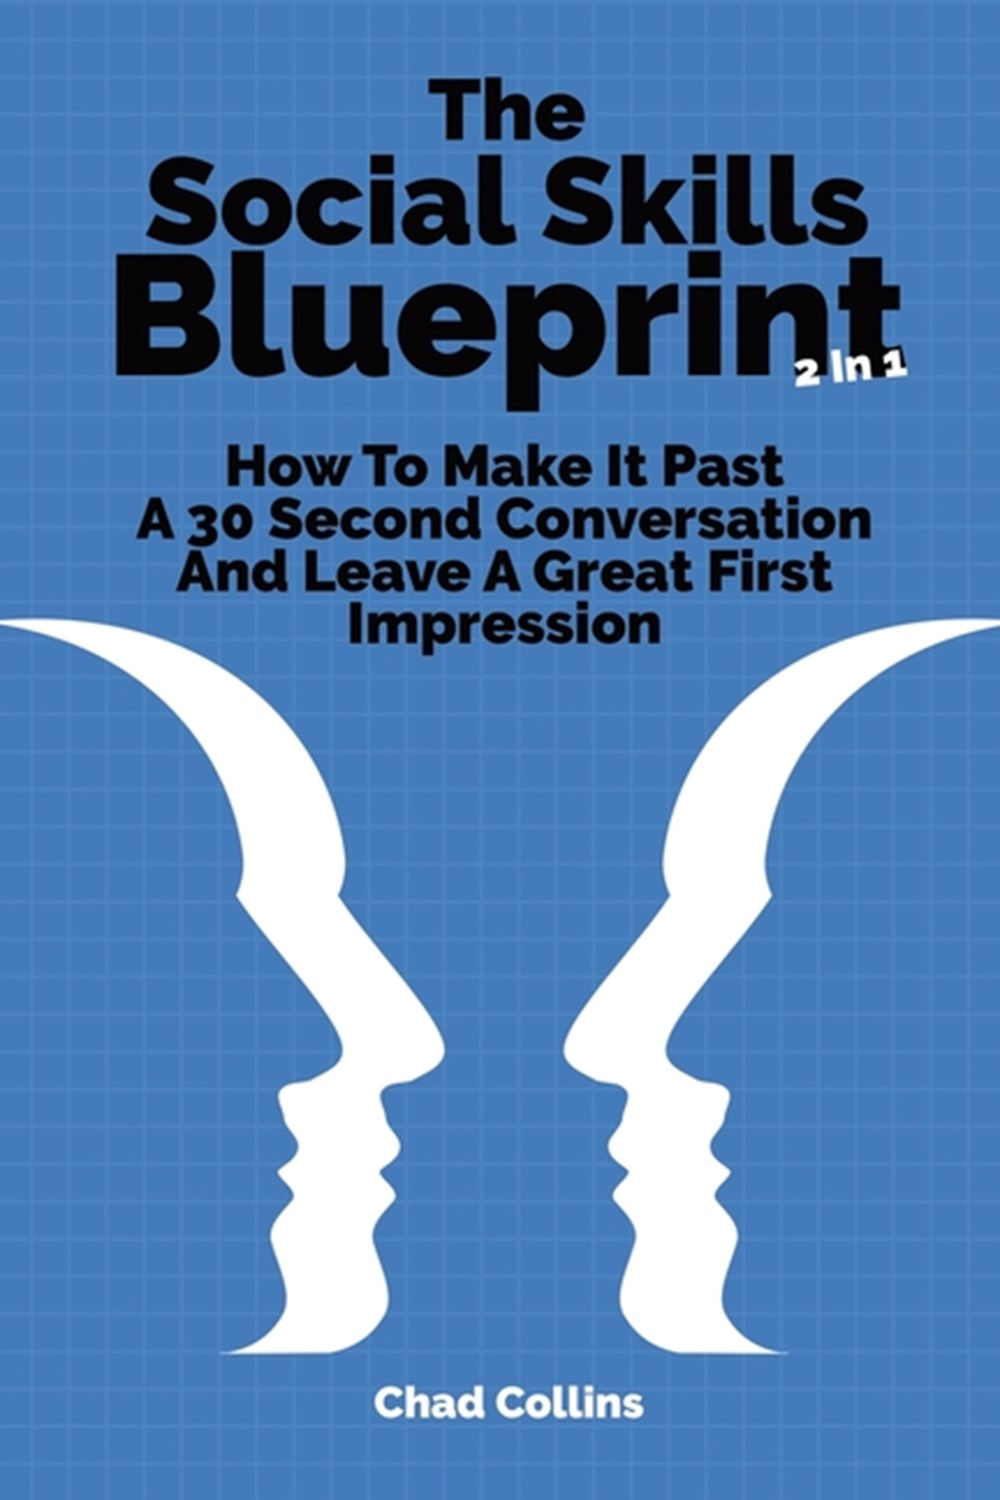 Social Skills Blueprint 2 In 1 How To Make It Past A 30 Second Conversation And Leave A Great First